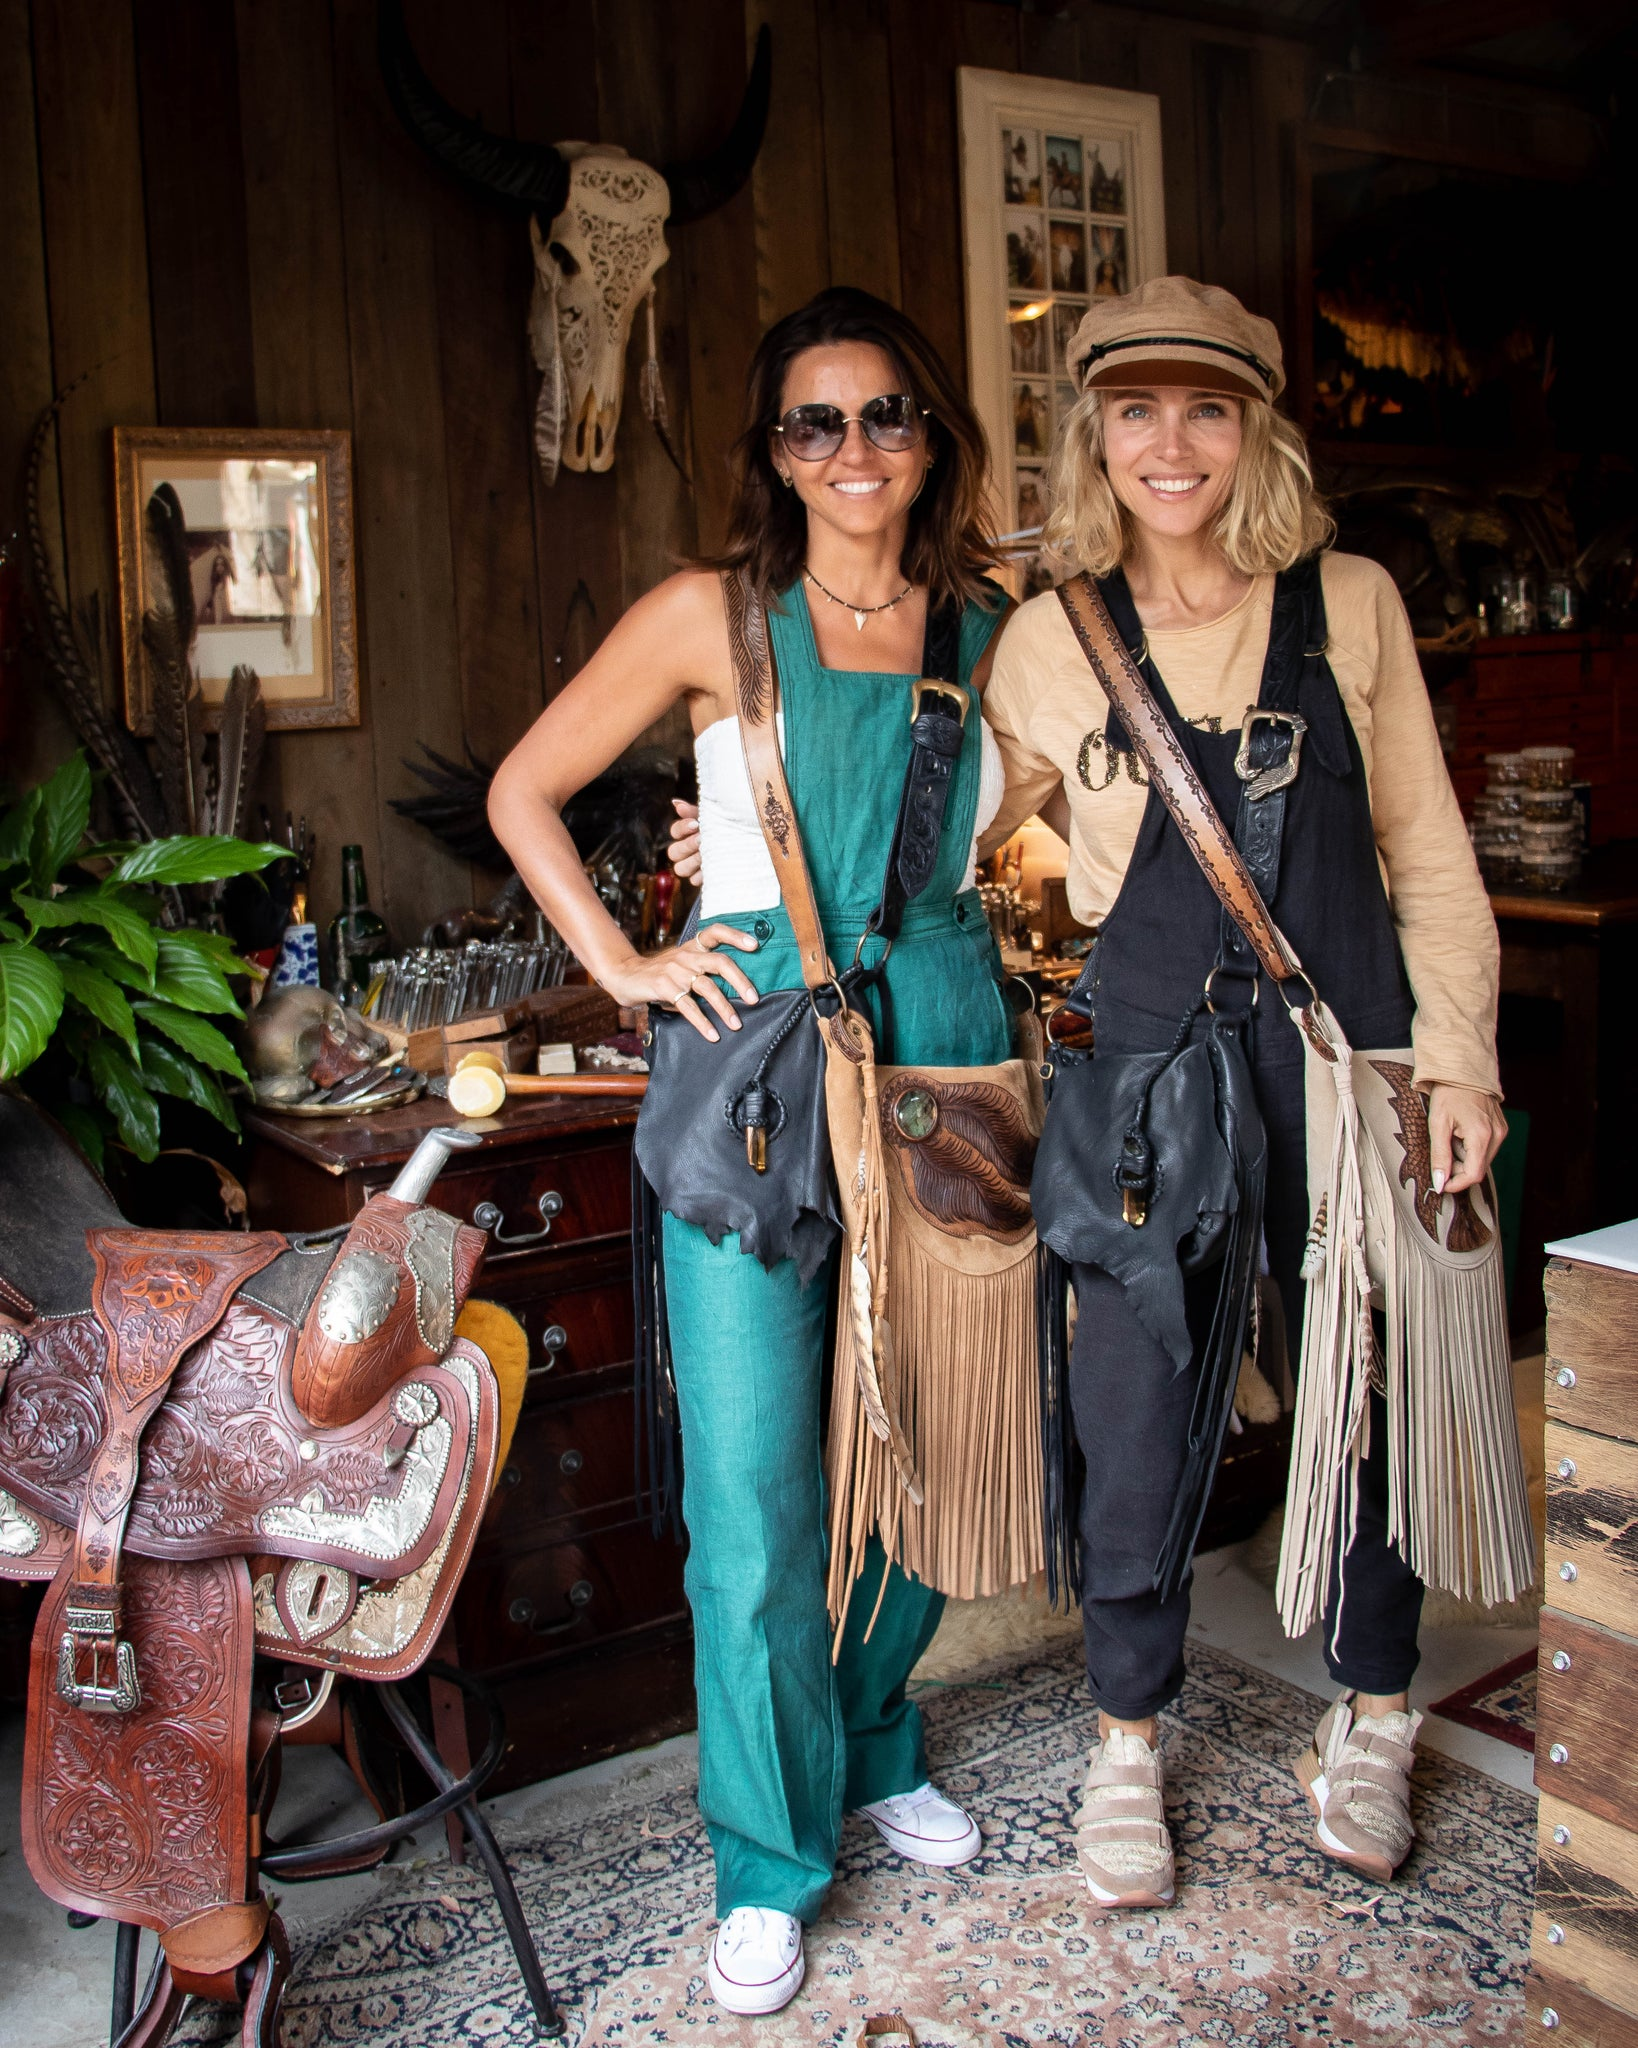 Elsa Pataky & Luciana Barroso at the Buffalo Girl studio wearing custom made bags